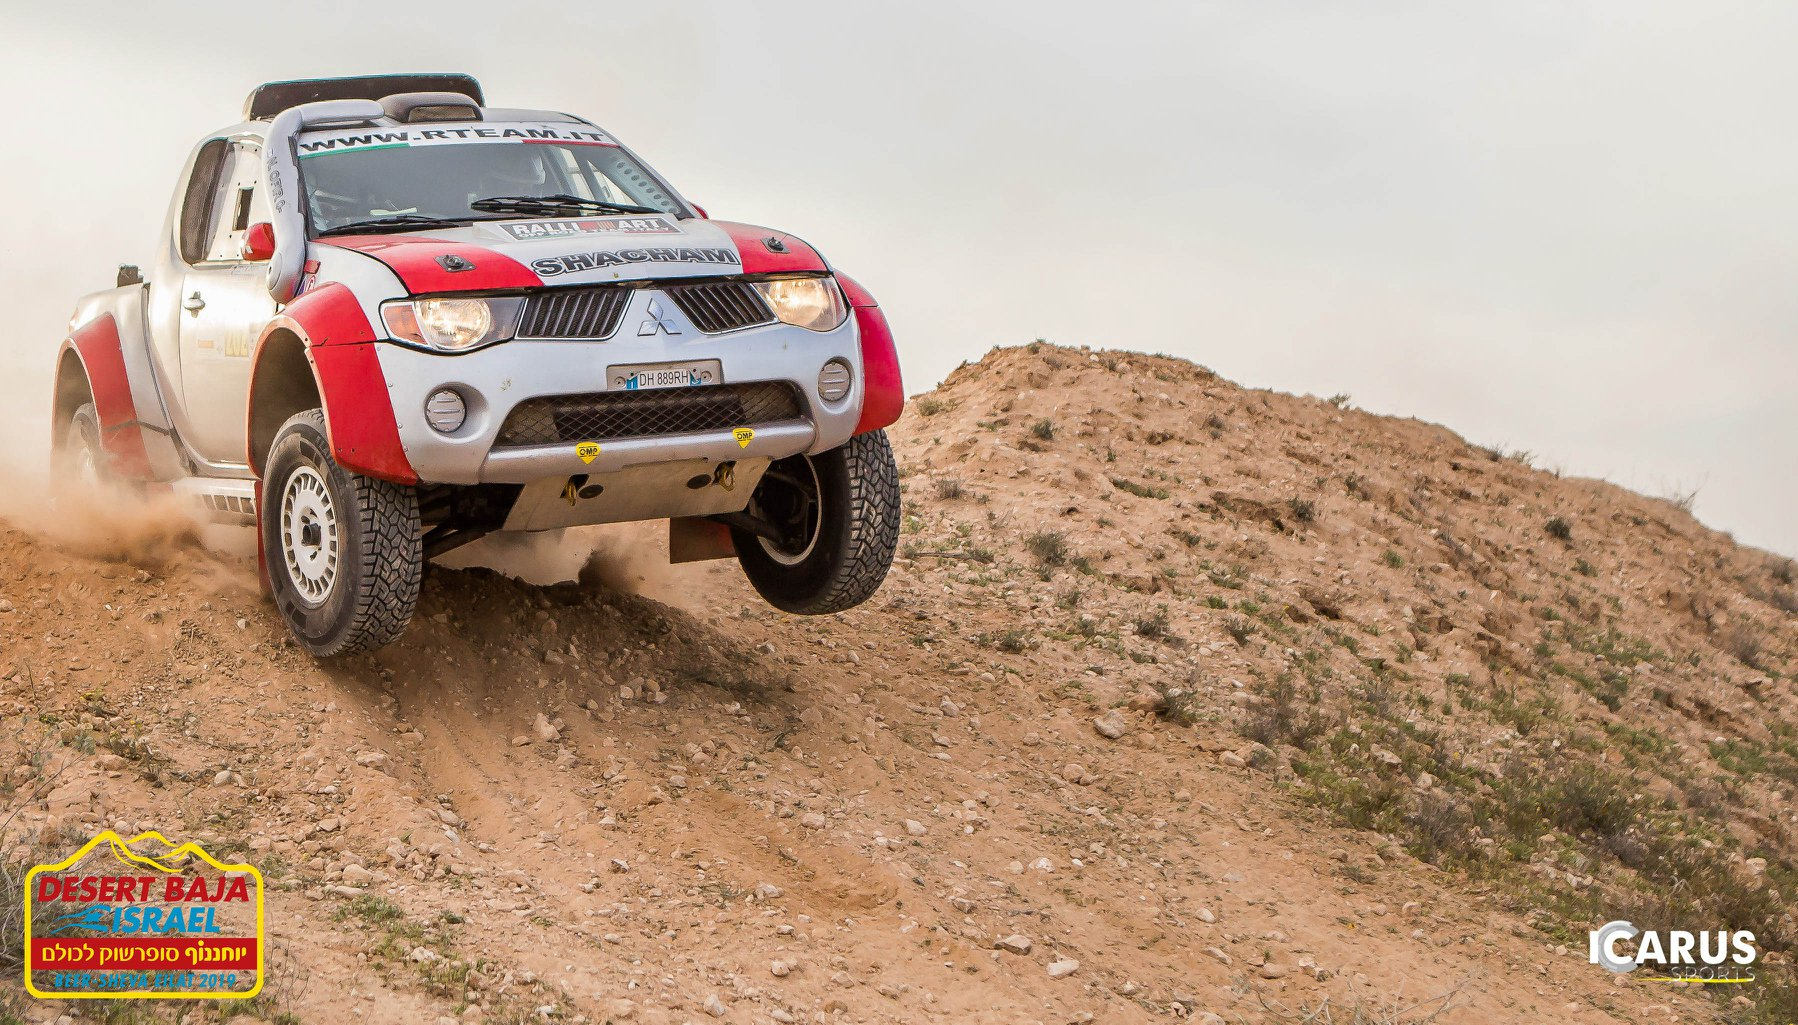 ICARUS SPORTS LAUNCHES PARTNERSHIP WITH DESERT BAJA ISRAEL